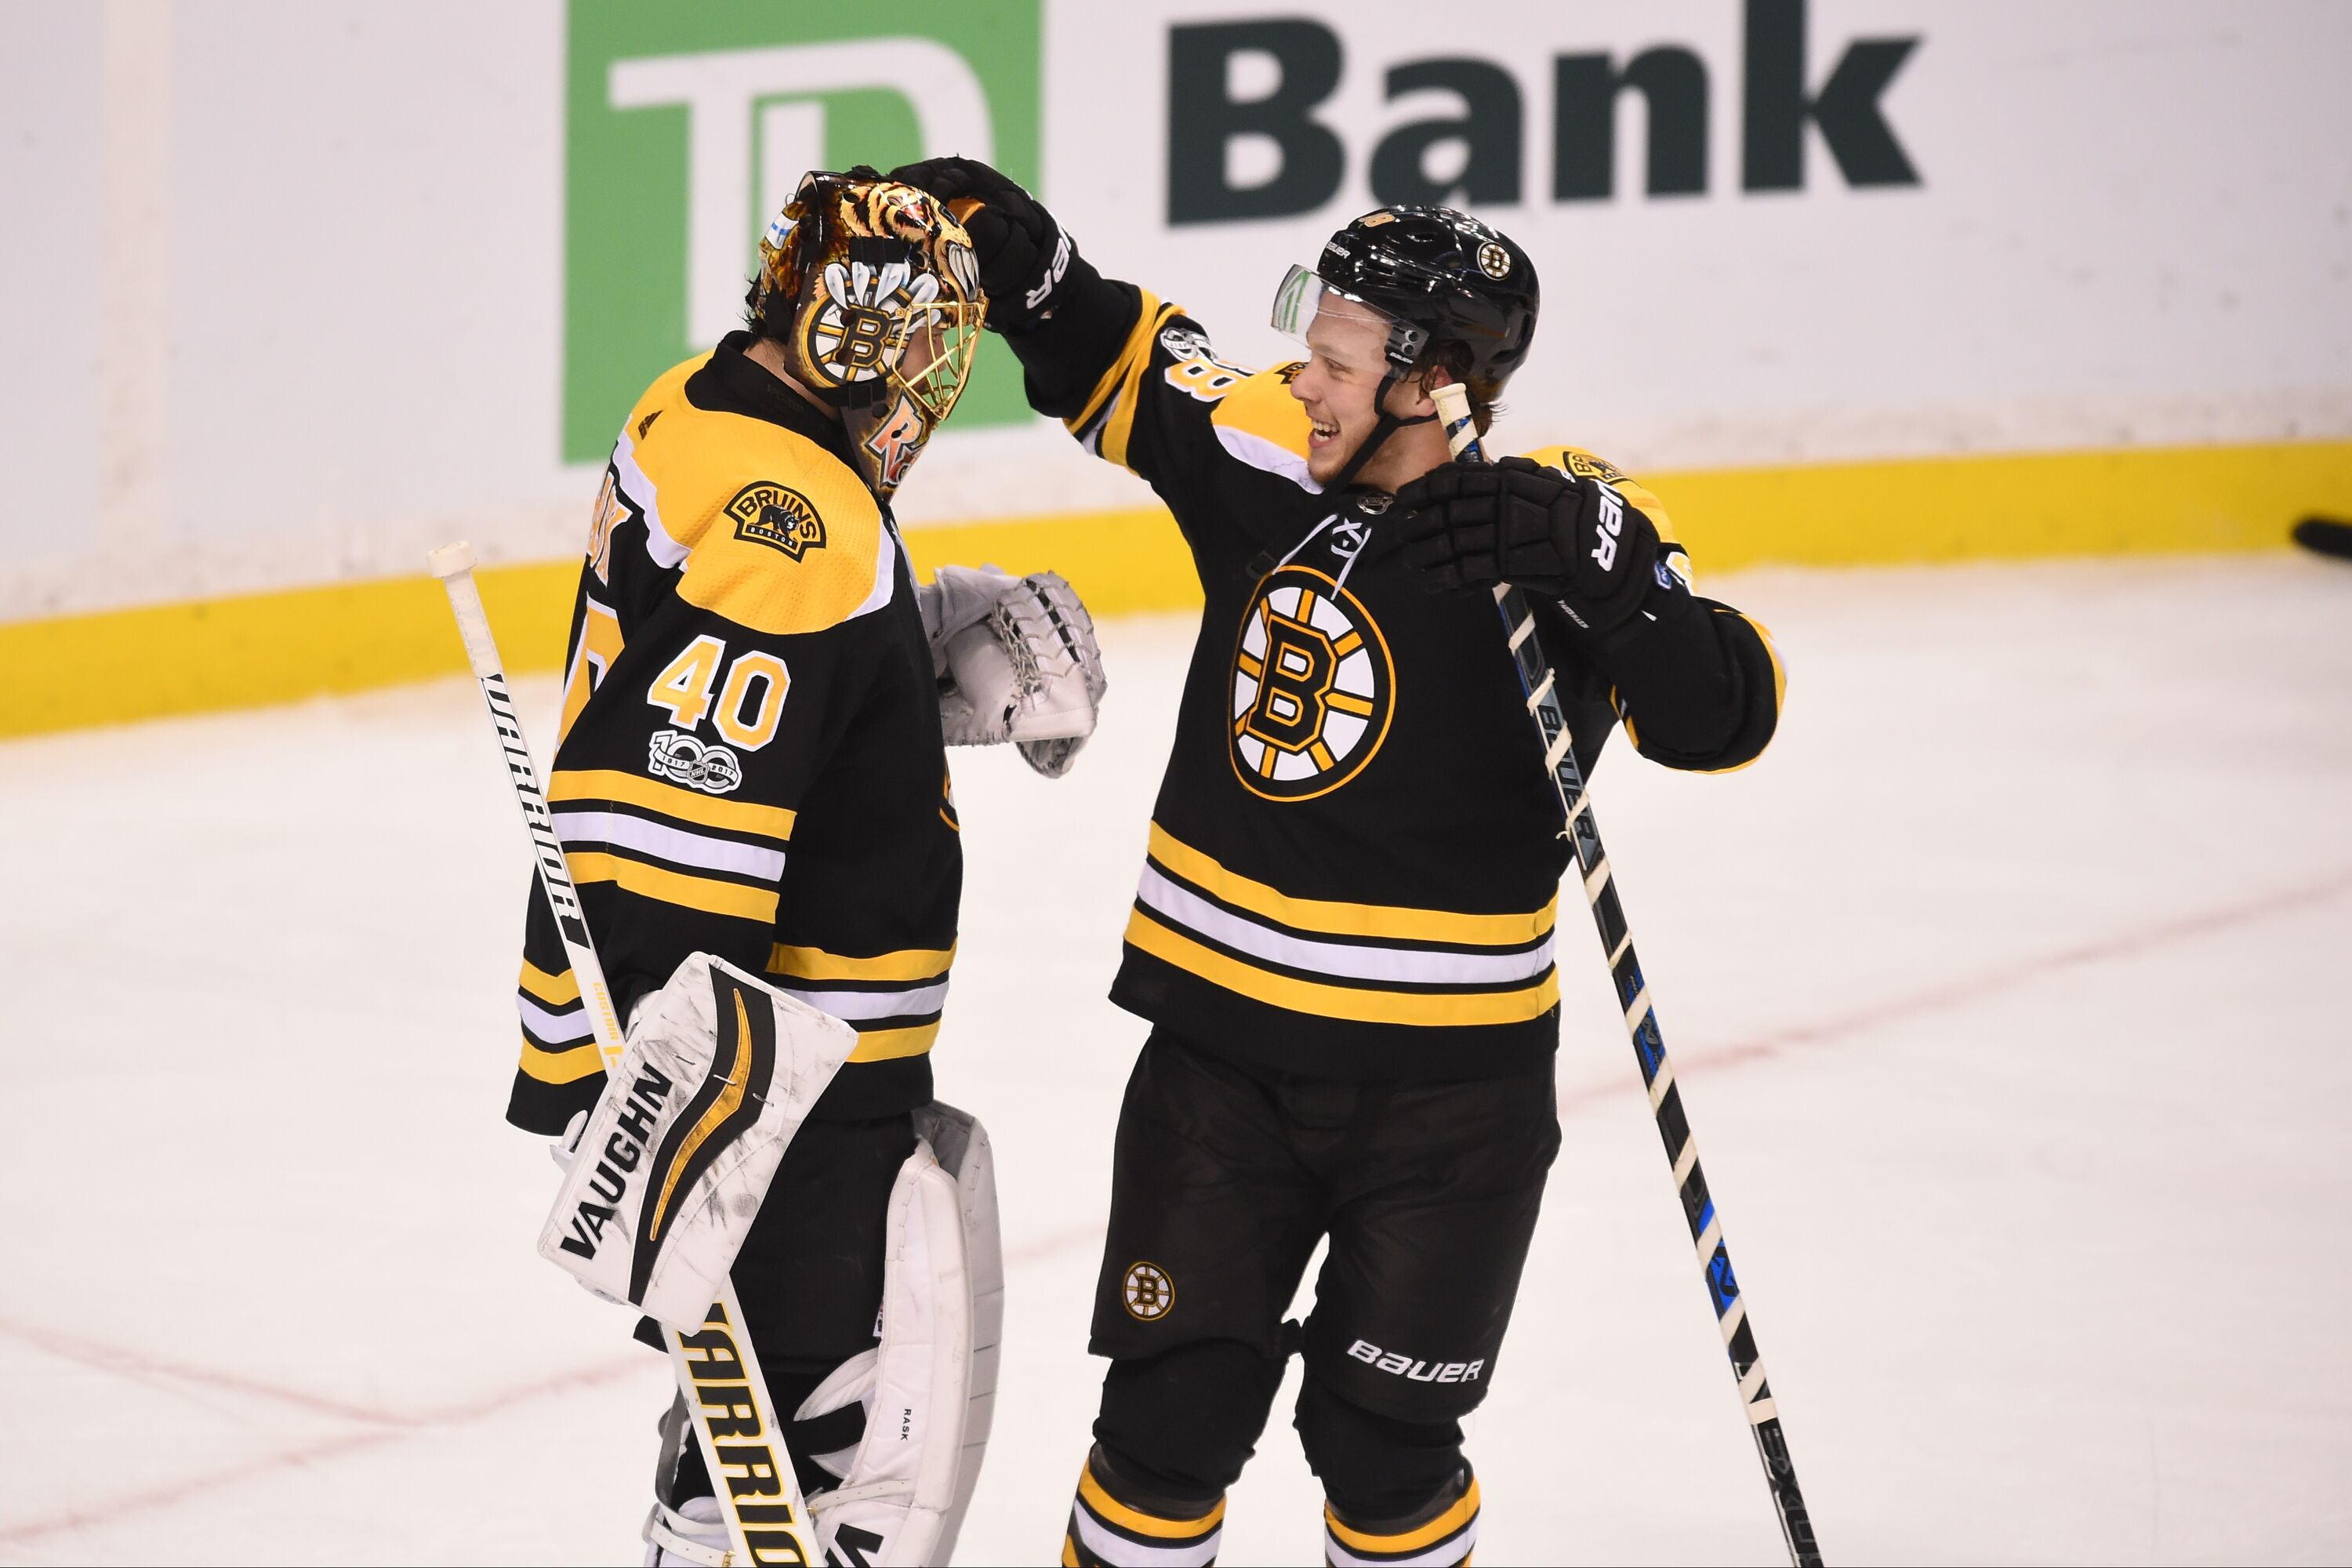 889122576-new-york-islanders-v-boston-bruins.jpg